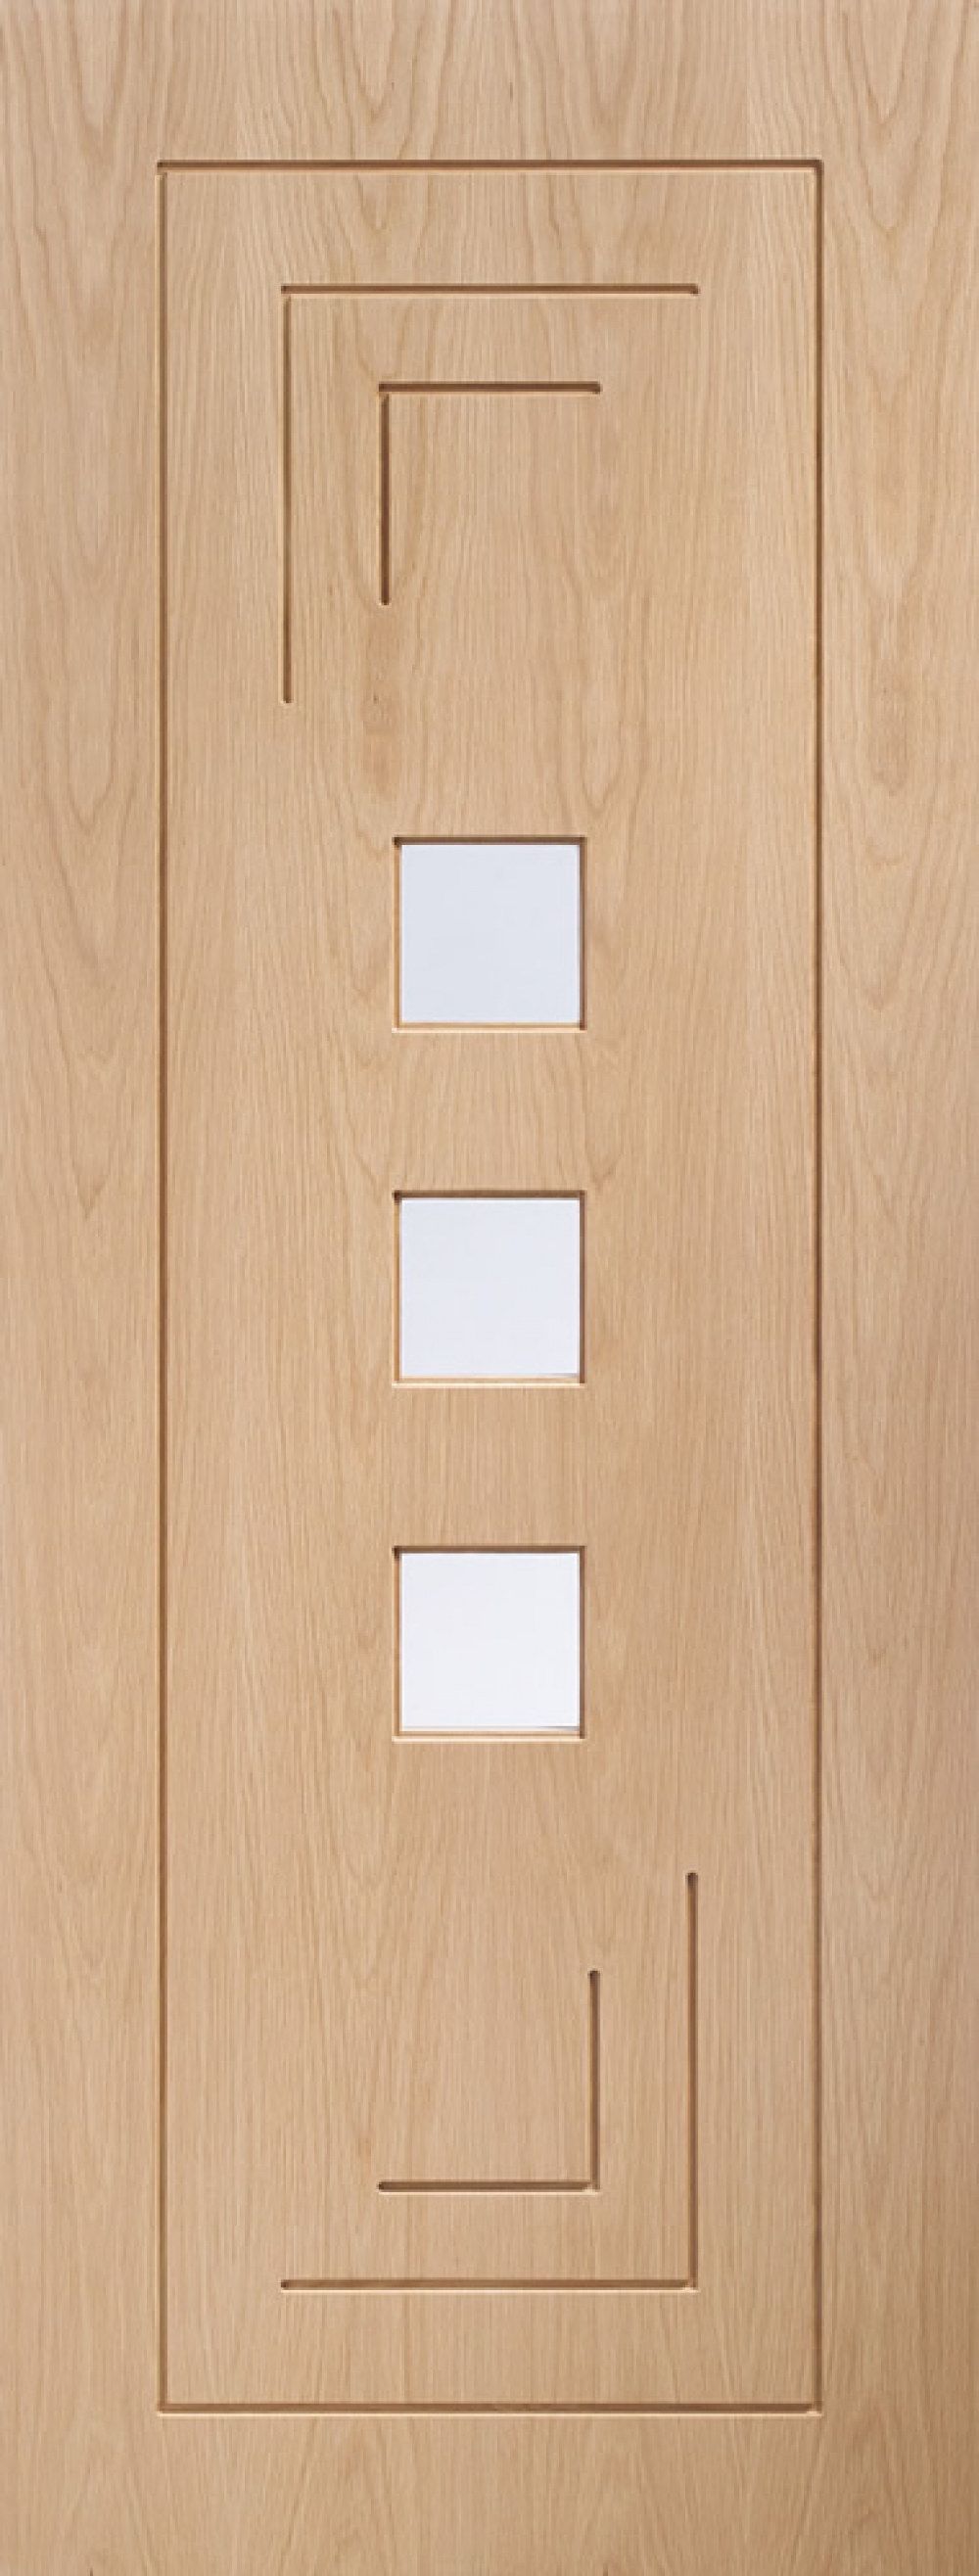 Altino Oak Glazed Door - PREFINISHED